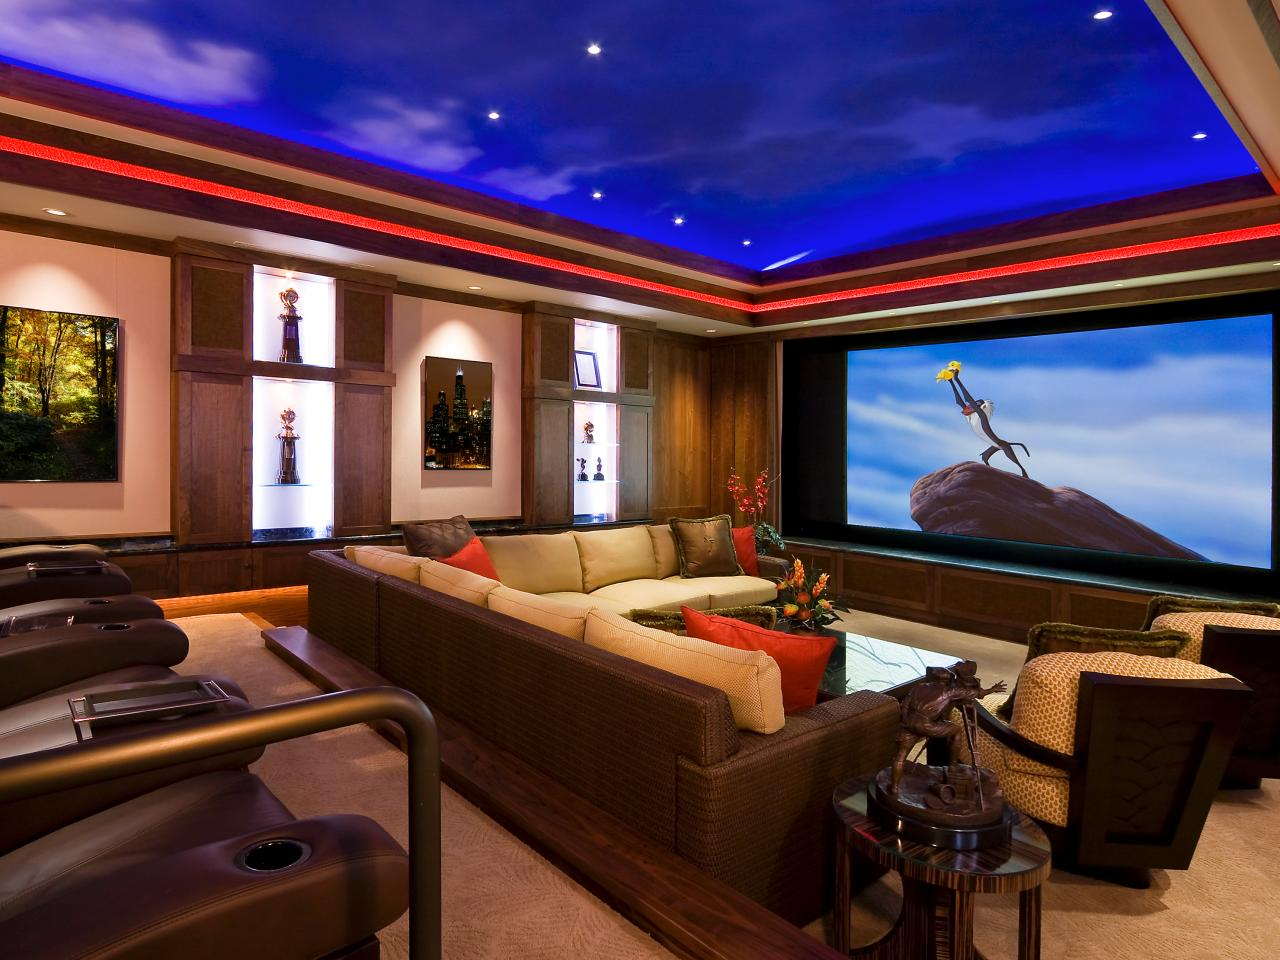 Planning The Perfect Home Theater Room For Scary Movies ... on business planning, nursing planning, health planning, christmas planning, engineering planning, performance planning, technology planning, blog planning, architecture planning, design planning, government planning, dance planning,